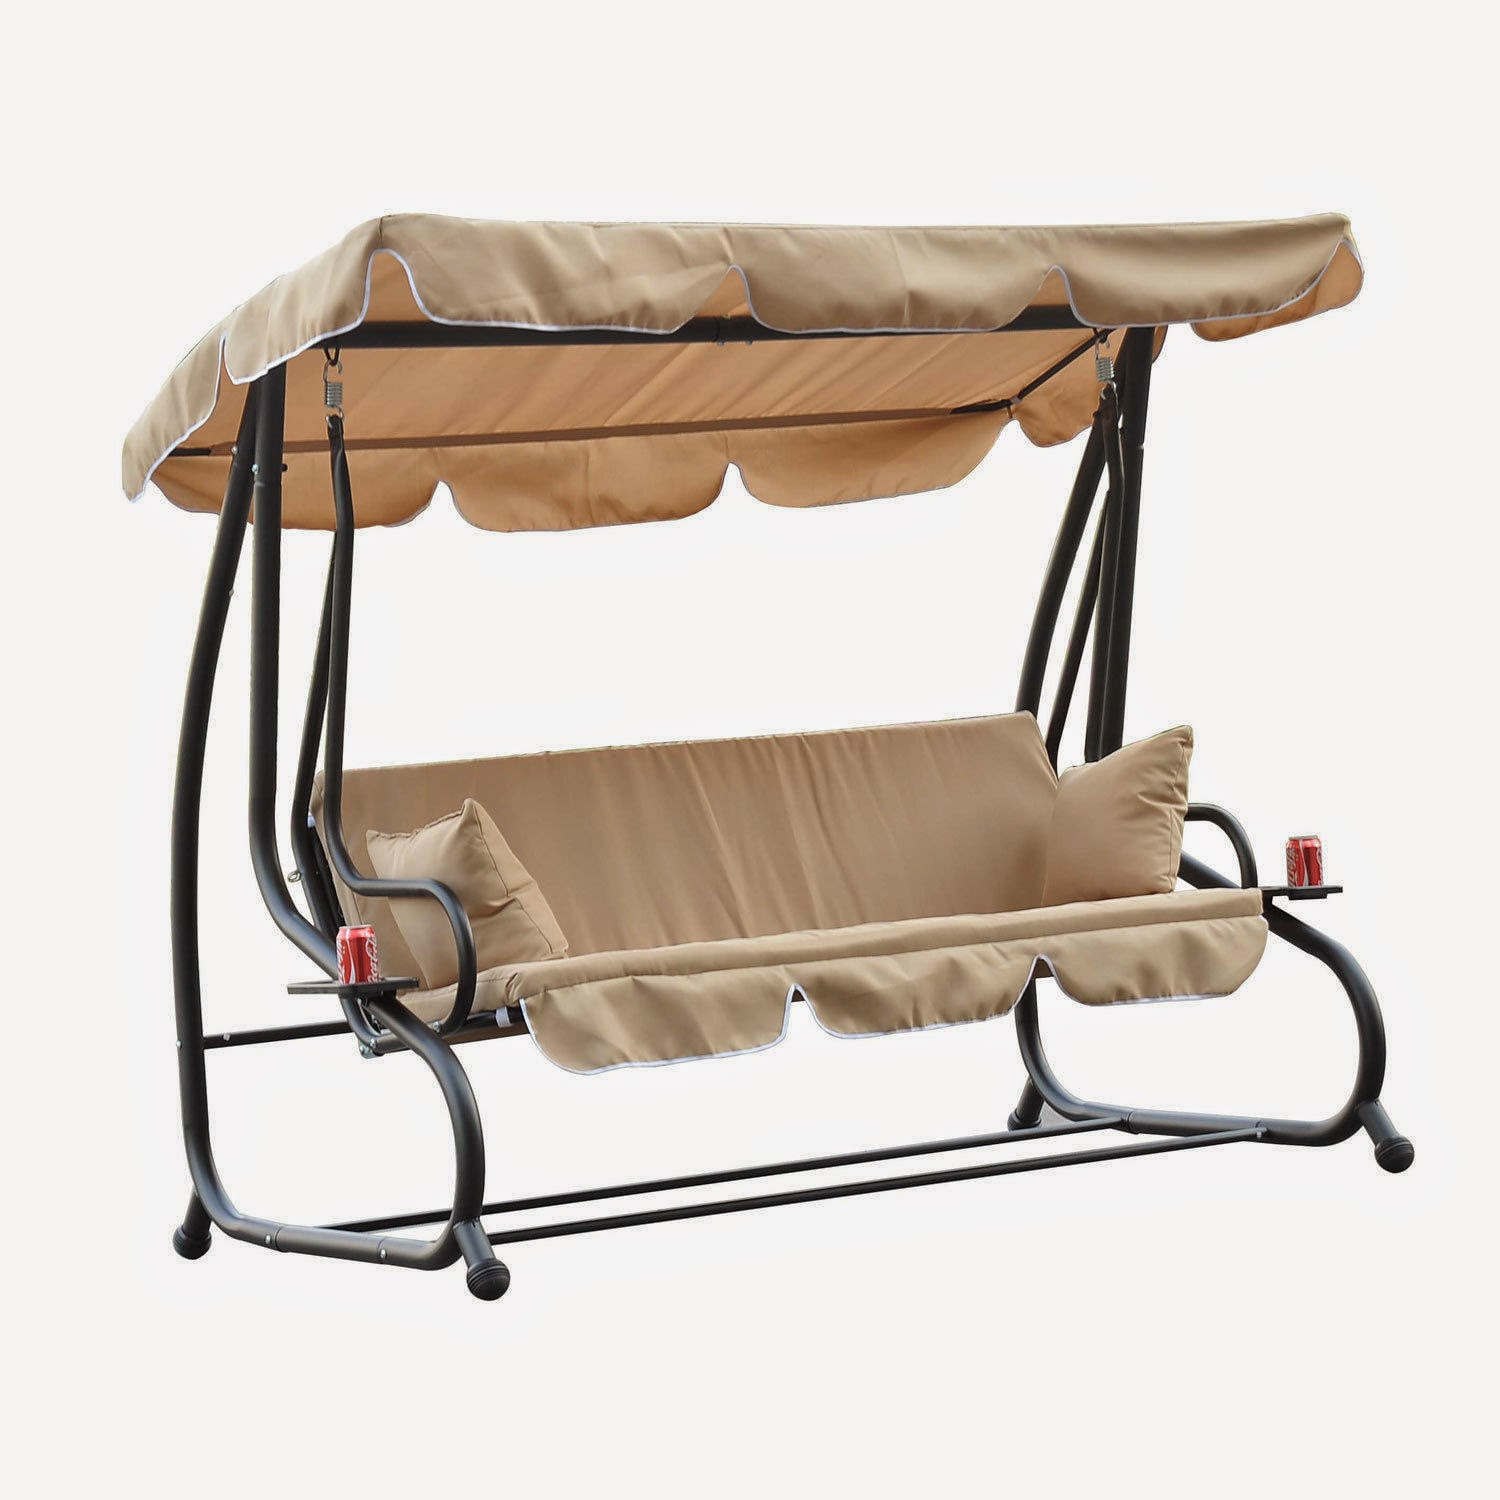 2 Person Patio Swing With Canopy Instant Knowledge